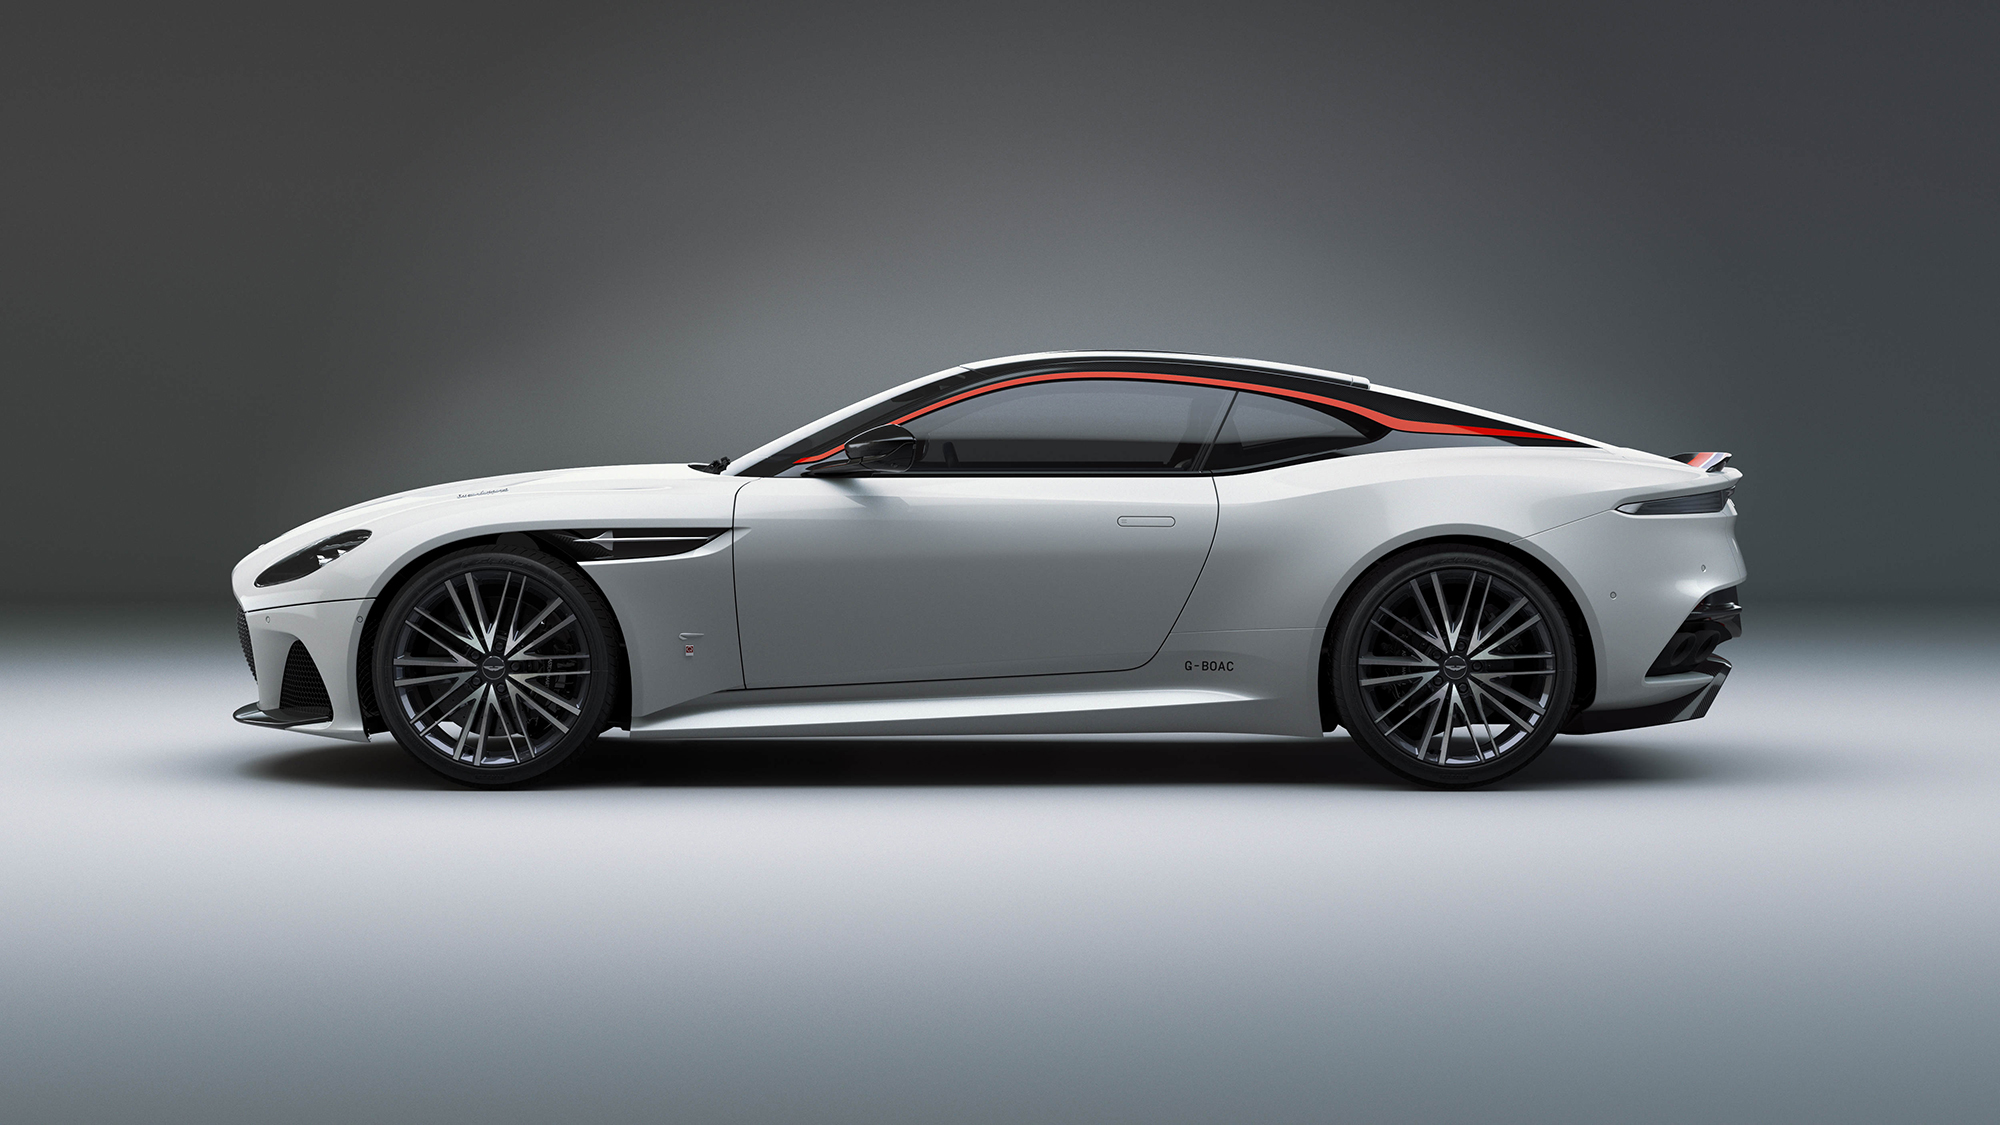 The new Aston Martin pays homage to the spirit of Concorde in its design and also incorporates actual parts of the aircraft